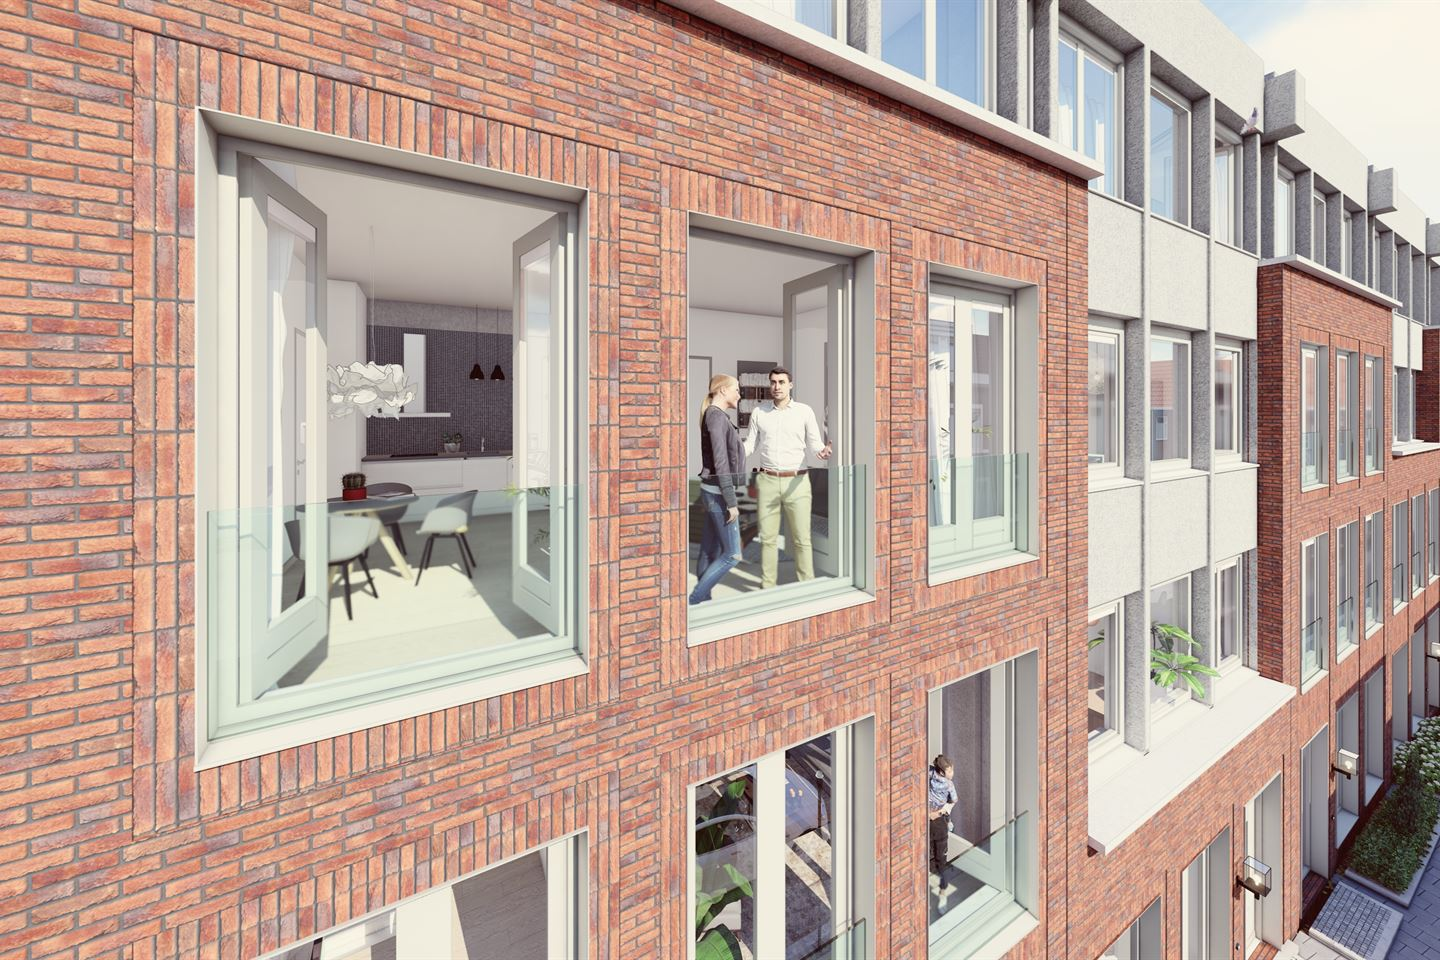 View photo 2 of Appartement (Bouwnr. 12)